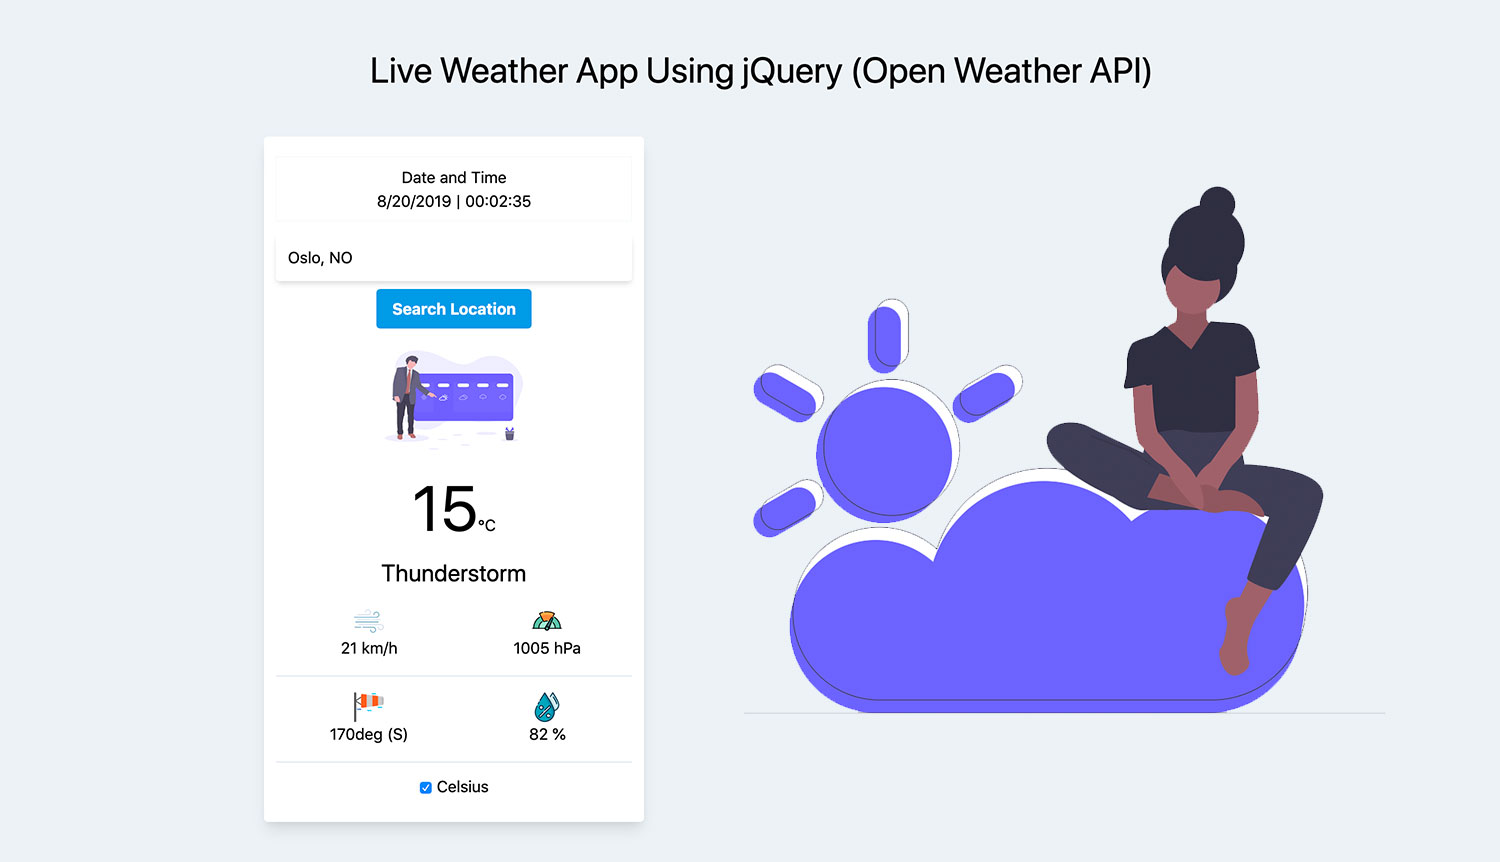 Live Weather App Using jQuery with Open Weather API